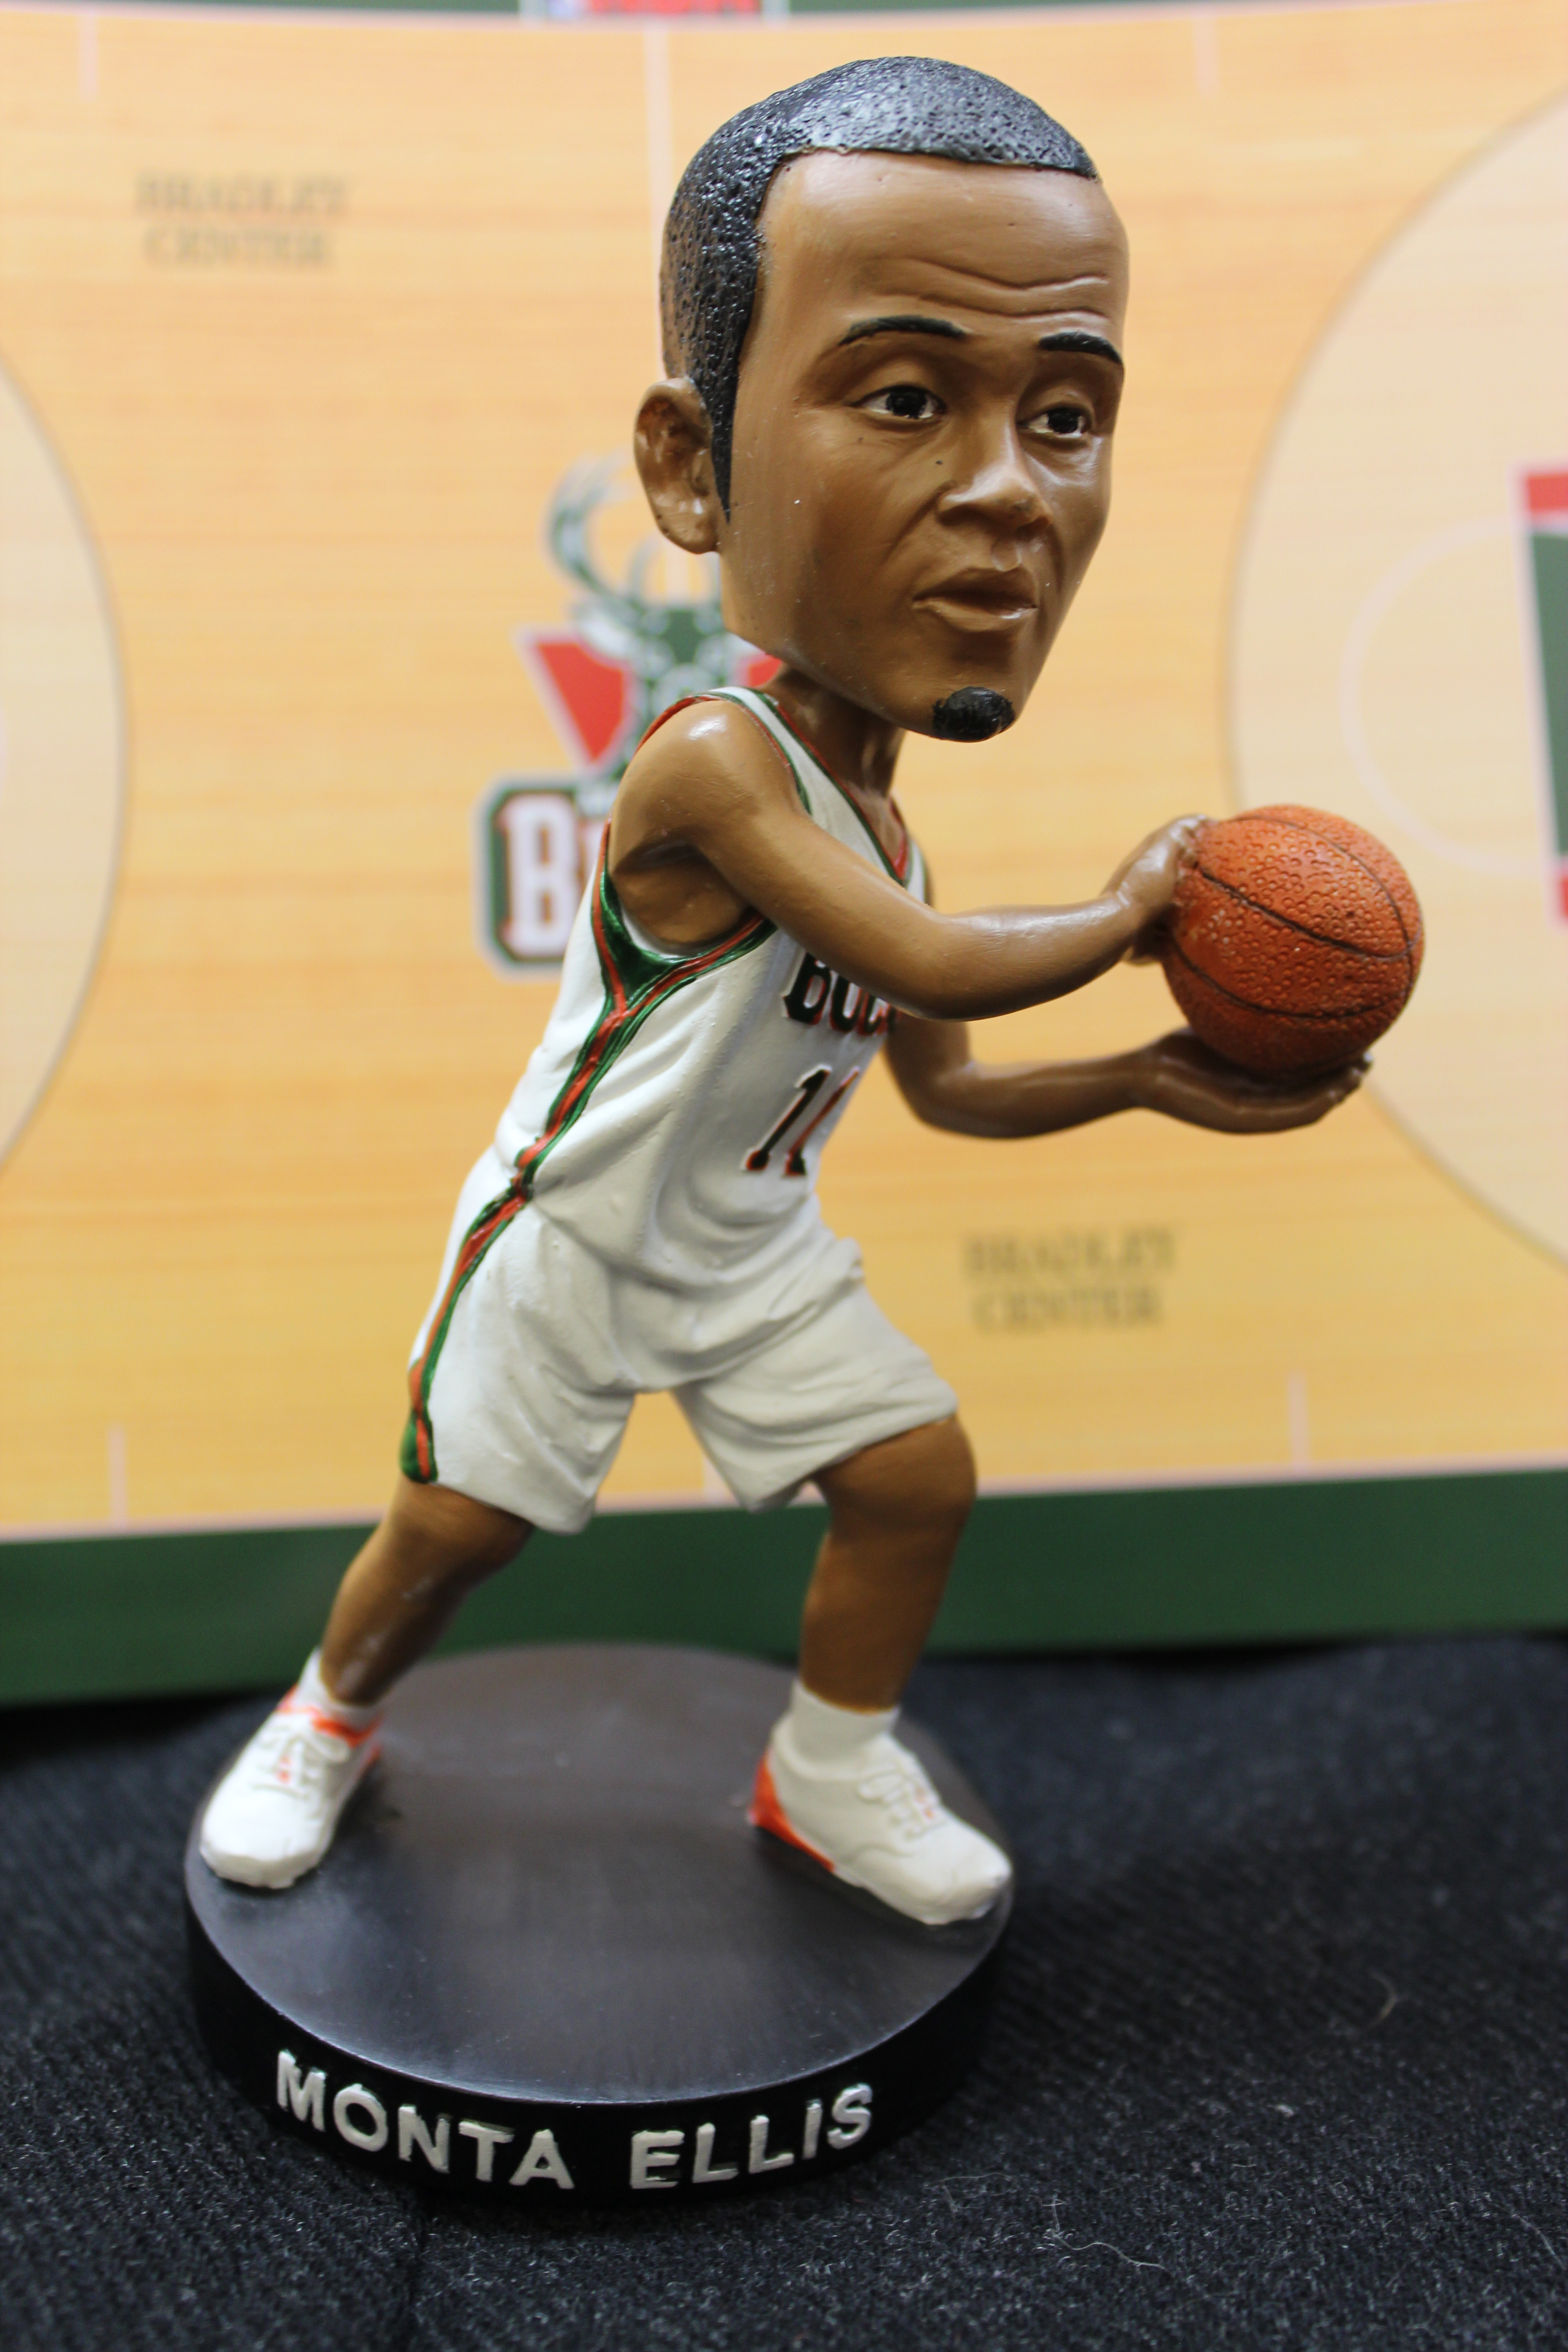 Monta Ellis 12-13 Bobble